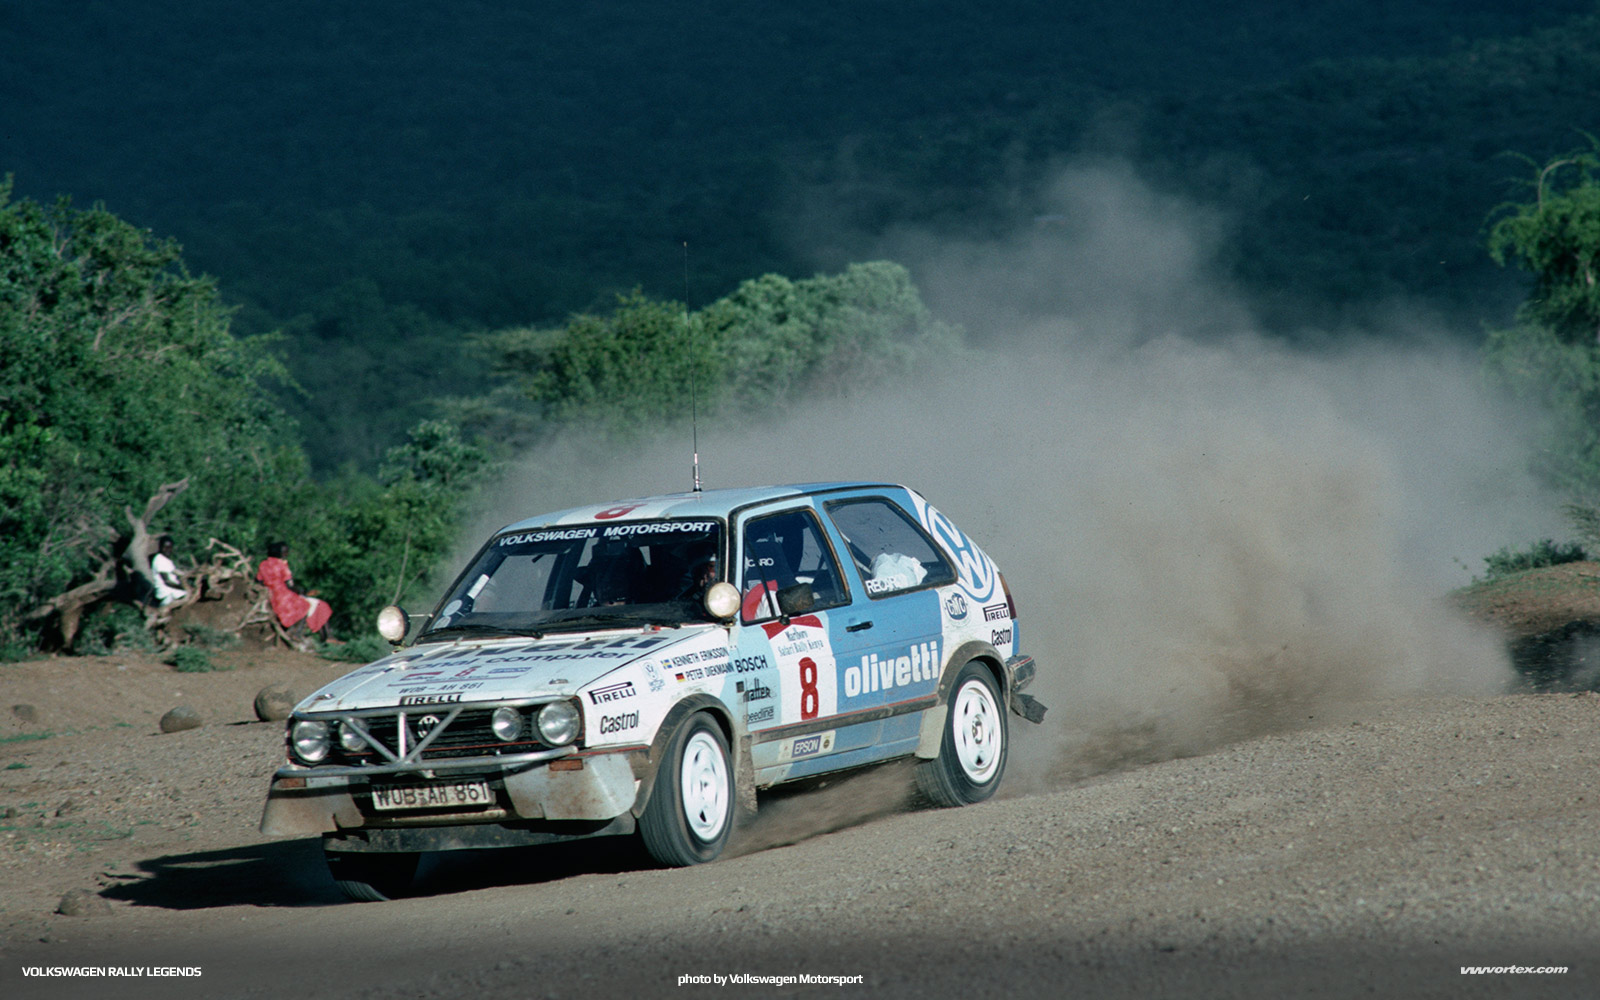 volkswagen-rally-legends-400